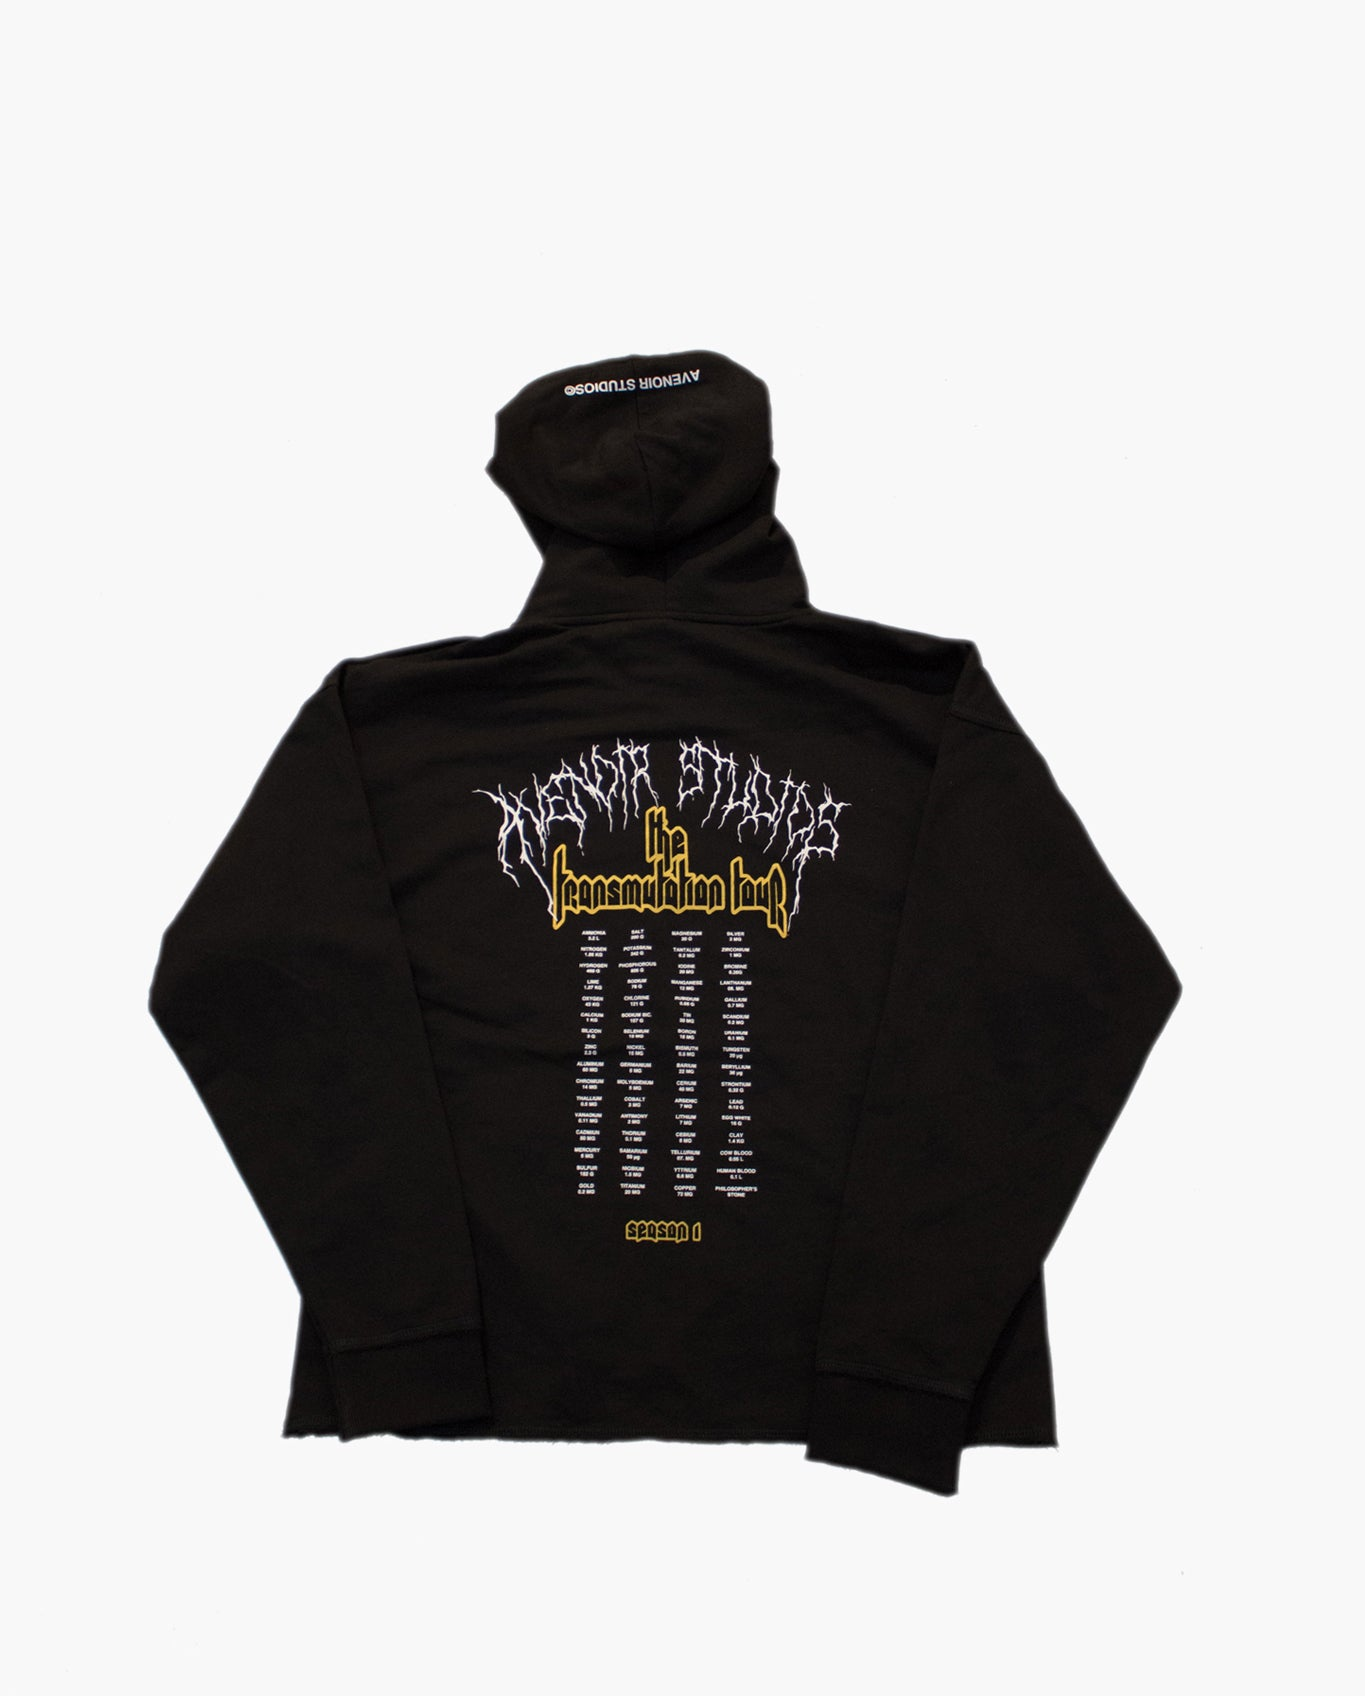 """The Transmutation Tour"" Alchemist Oversized Hoodie"